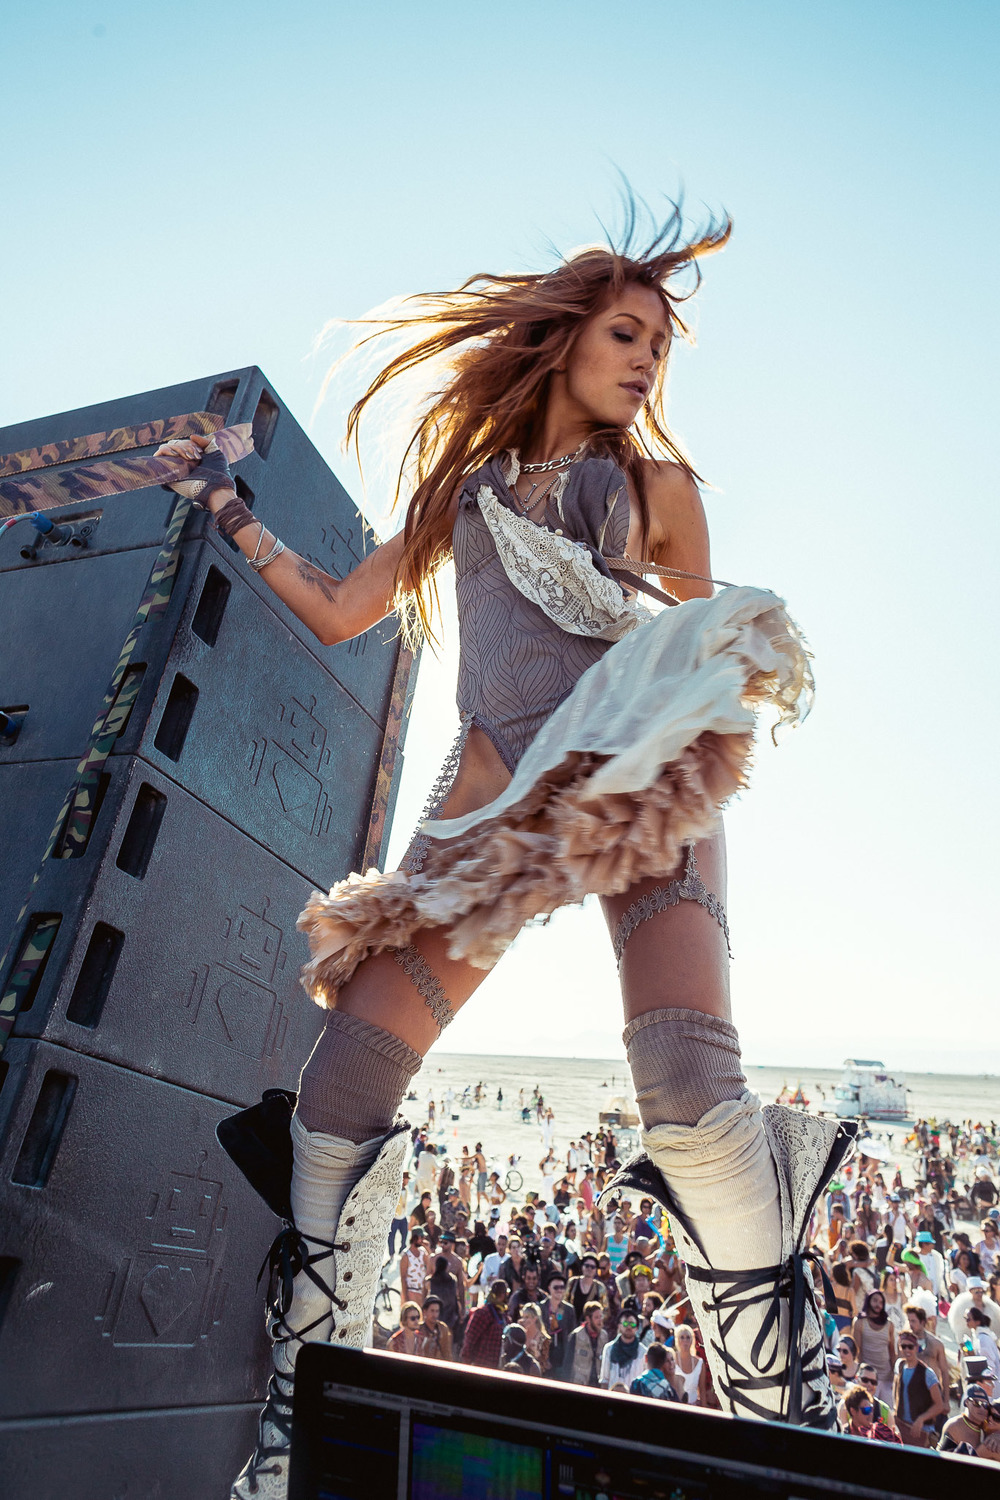 Burning_Man_2014_by_Cai_Griffin-68.jpg